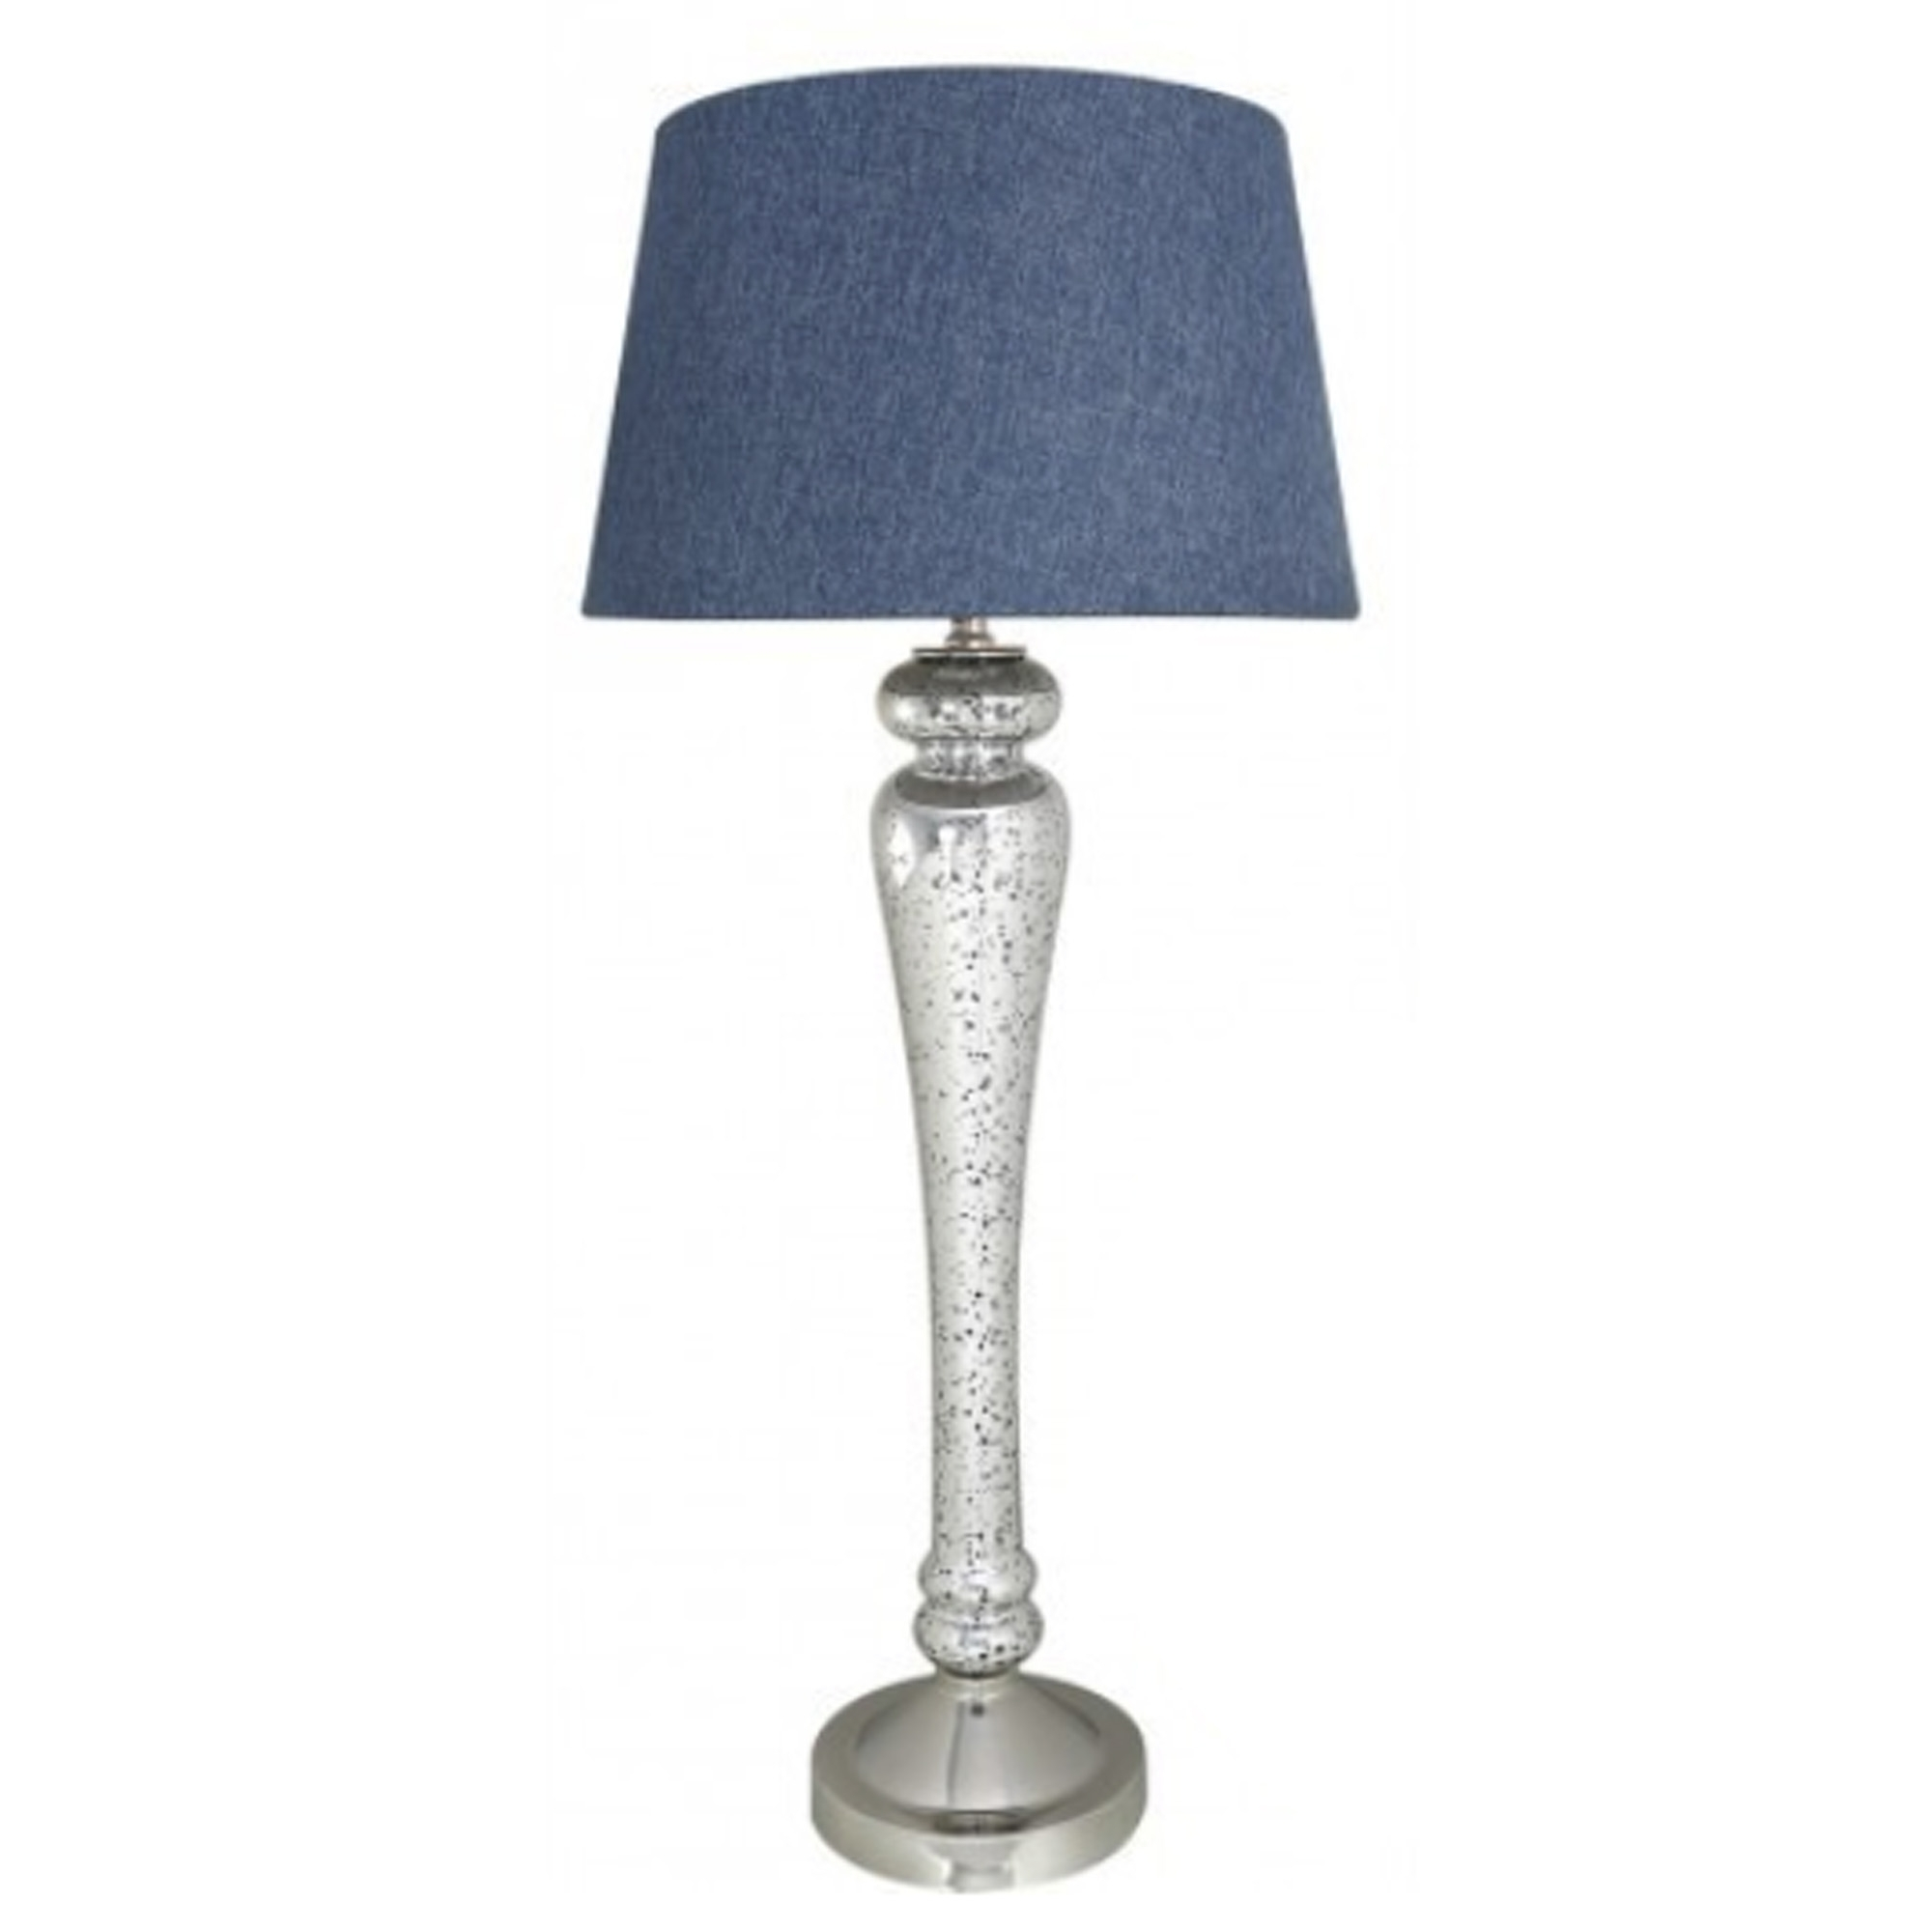 Silver Blue Modern Table Lamp Table Lamps Home Accessories